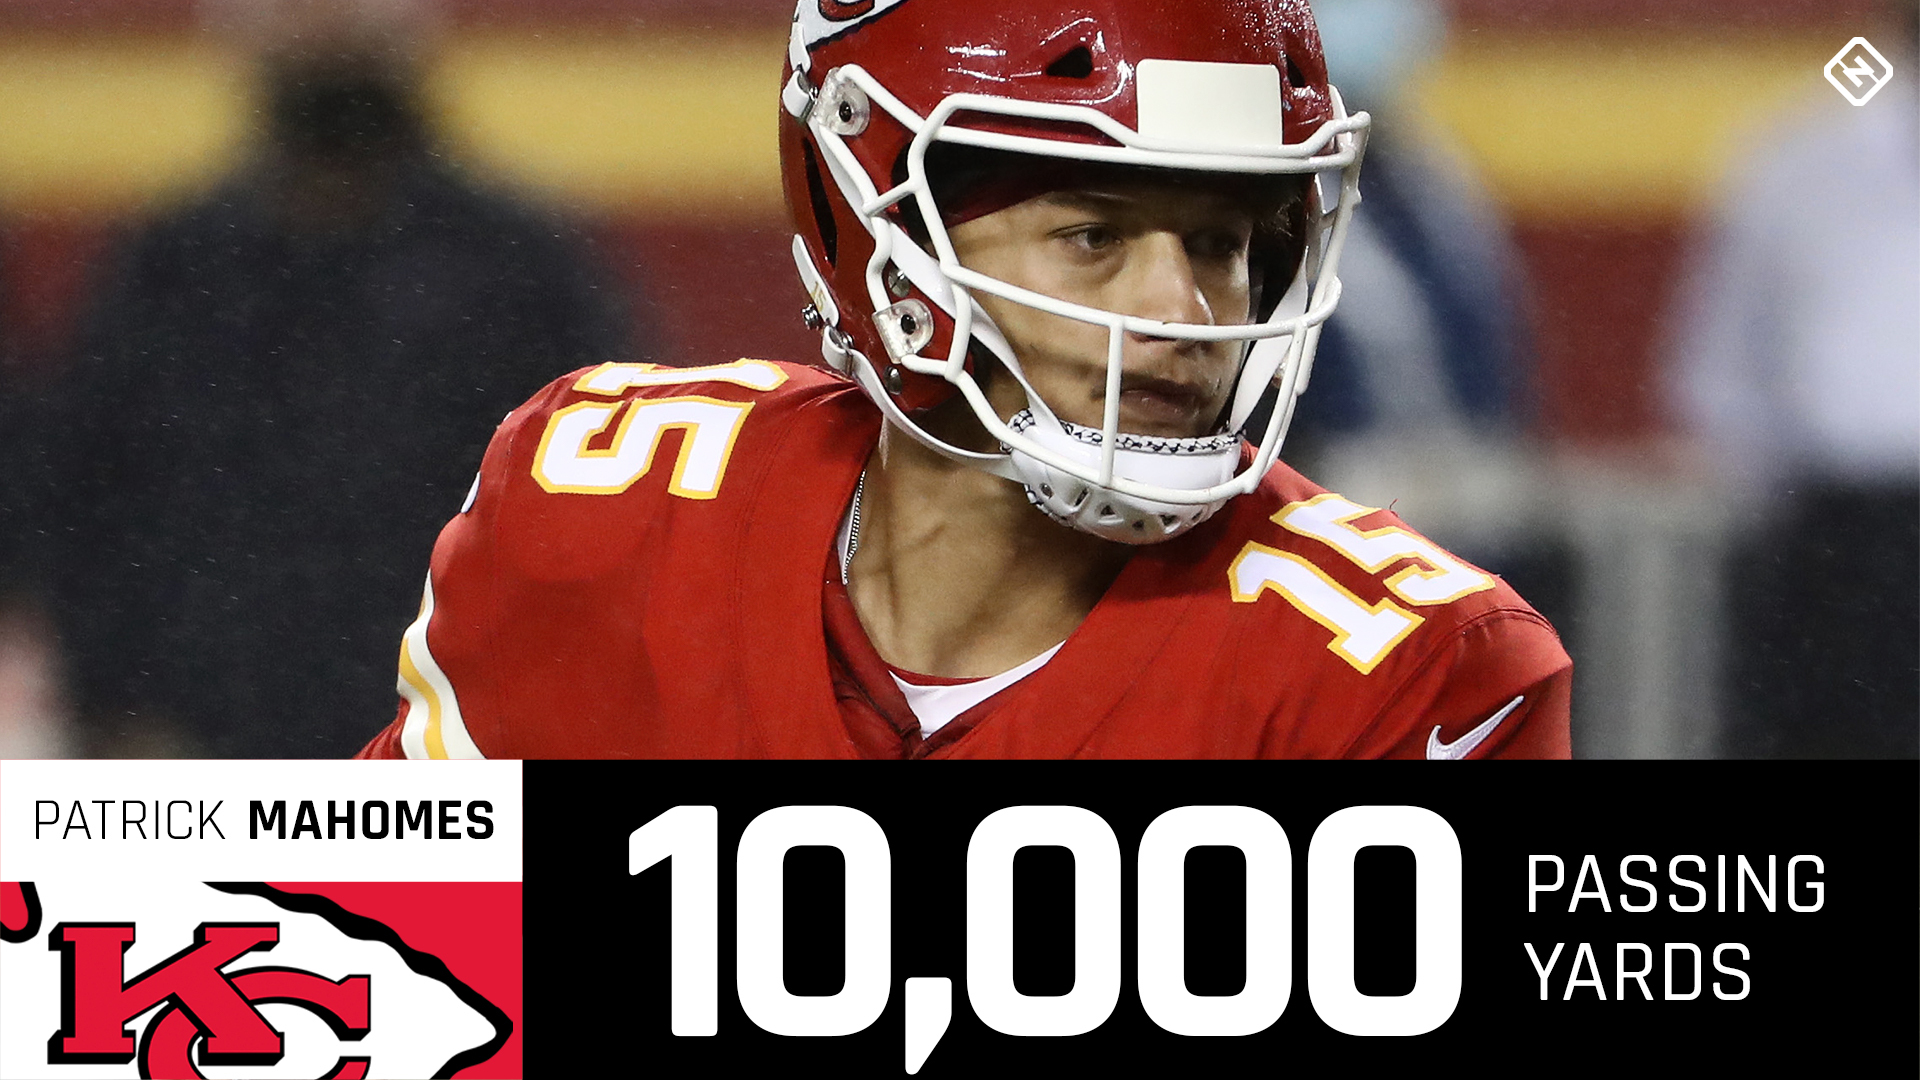 Patrick Mahomes fastest to 10,000 passing yards in NFL history 1